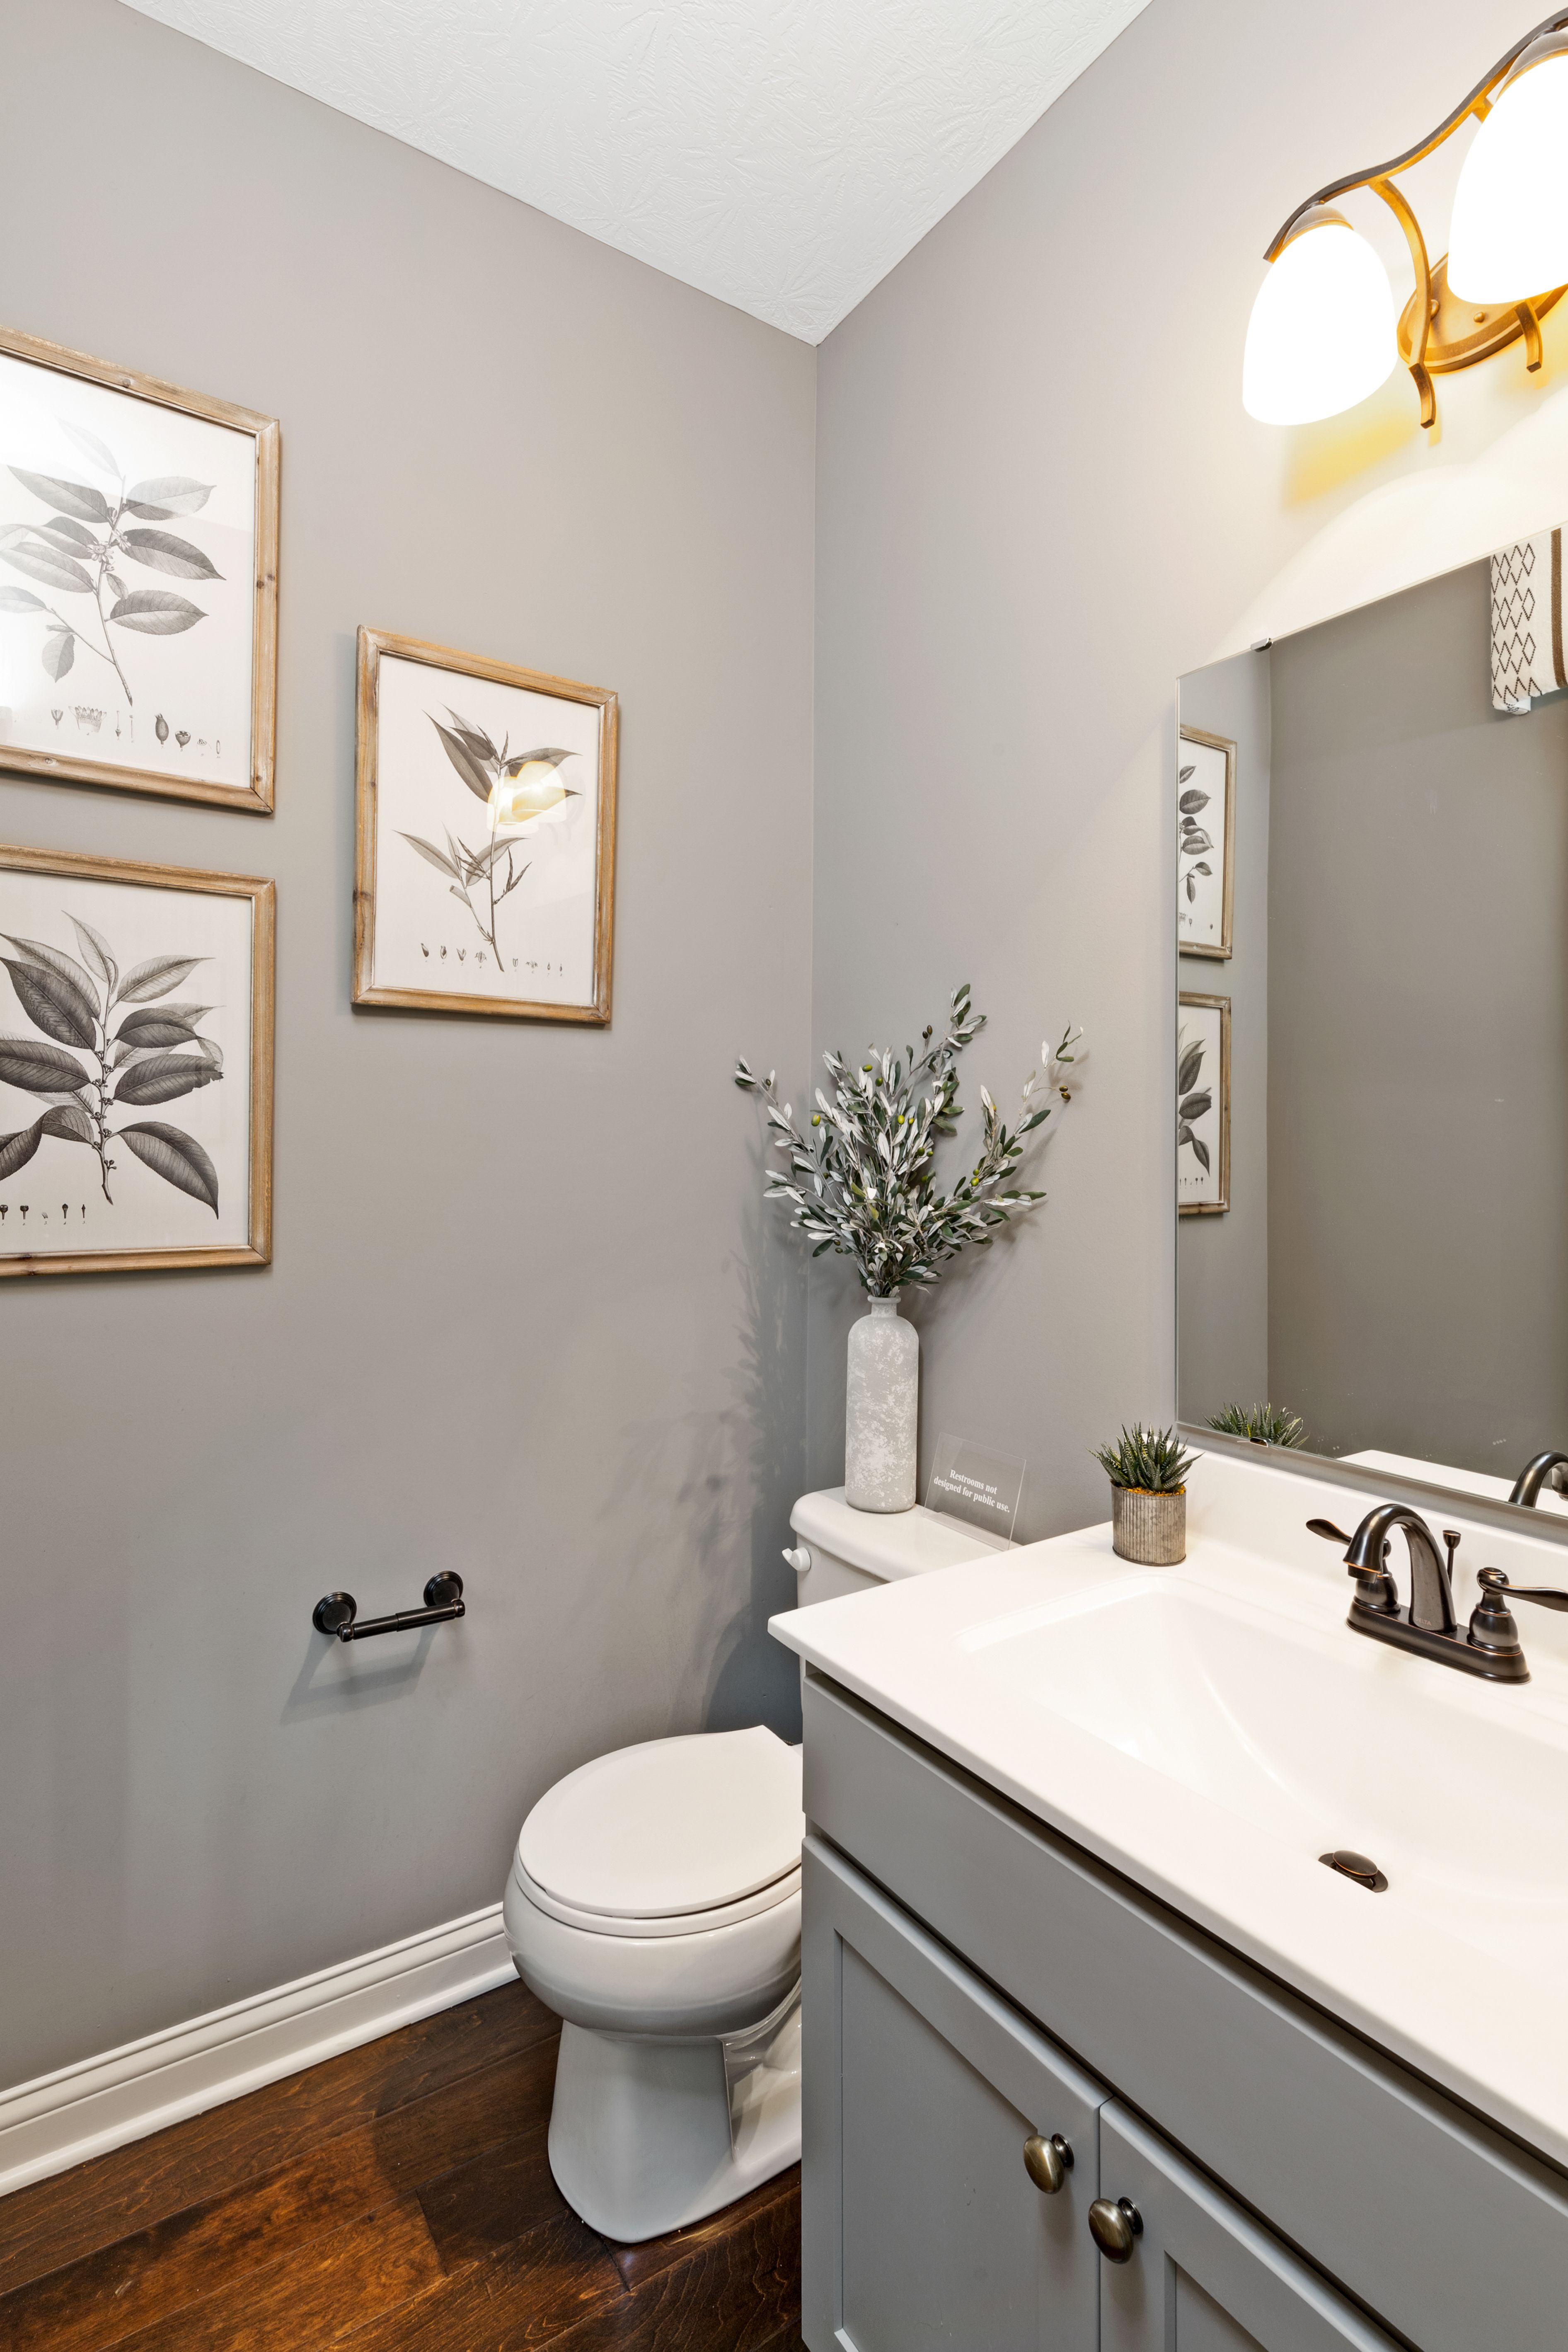 Bathroom featured in the Avery By Fischer Homes  in Cincinnati, KY